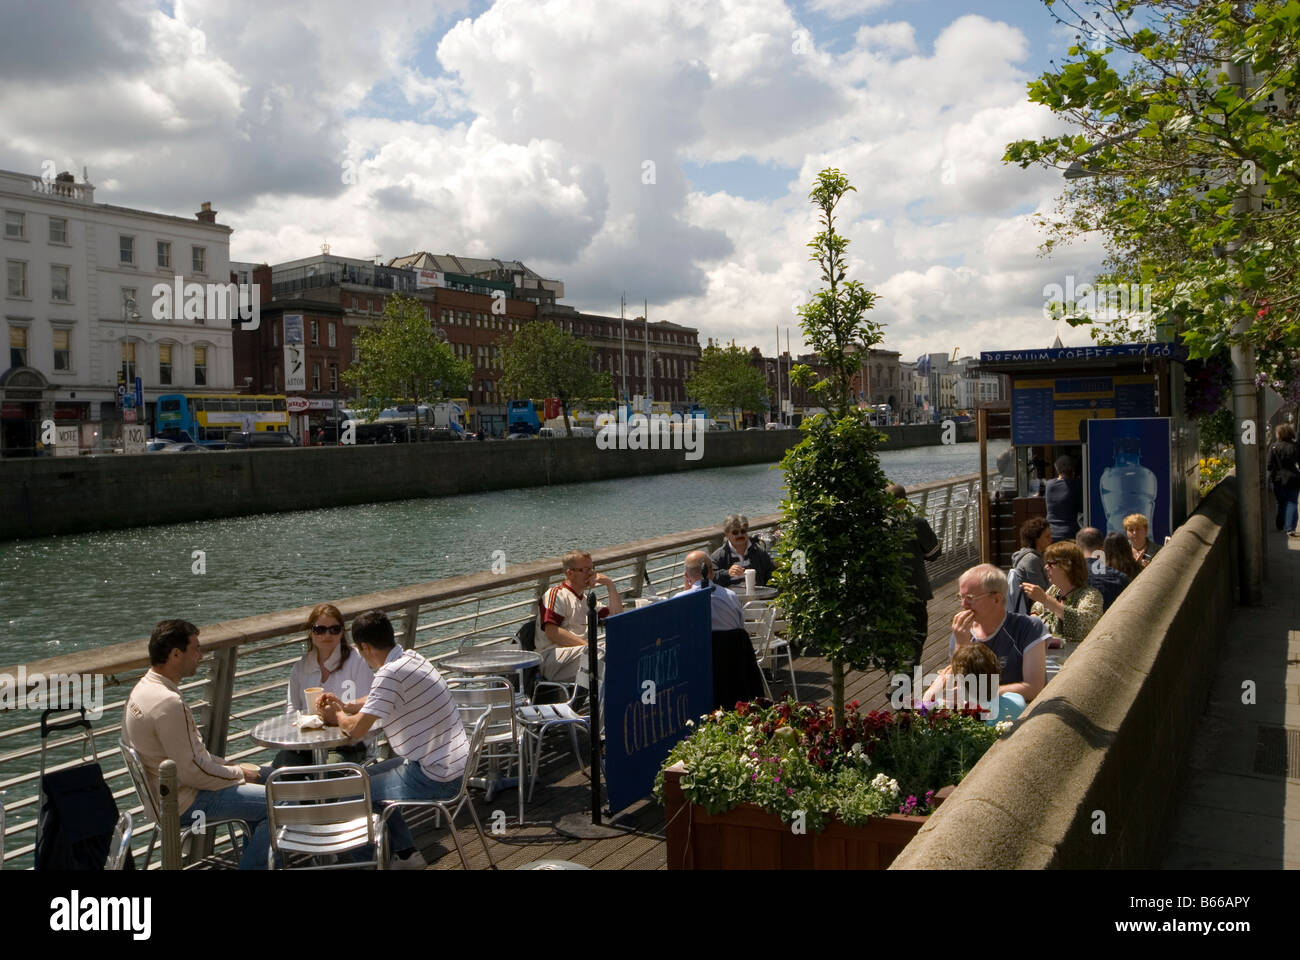 People drinking by River Liffey, Dublin, Ireland. - Stock Image